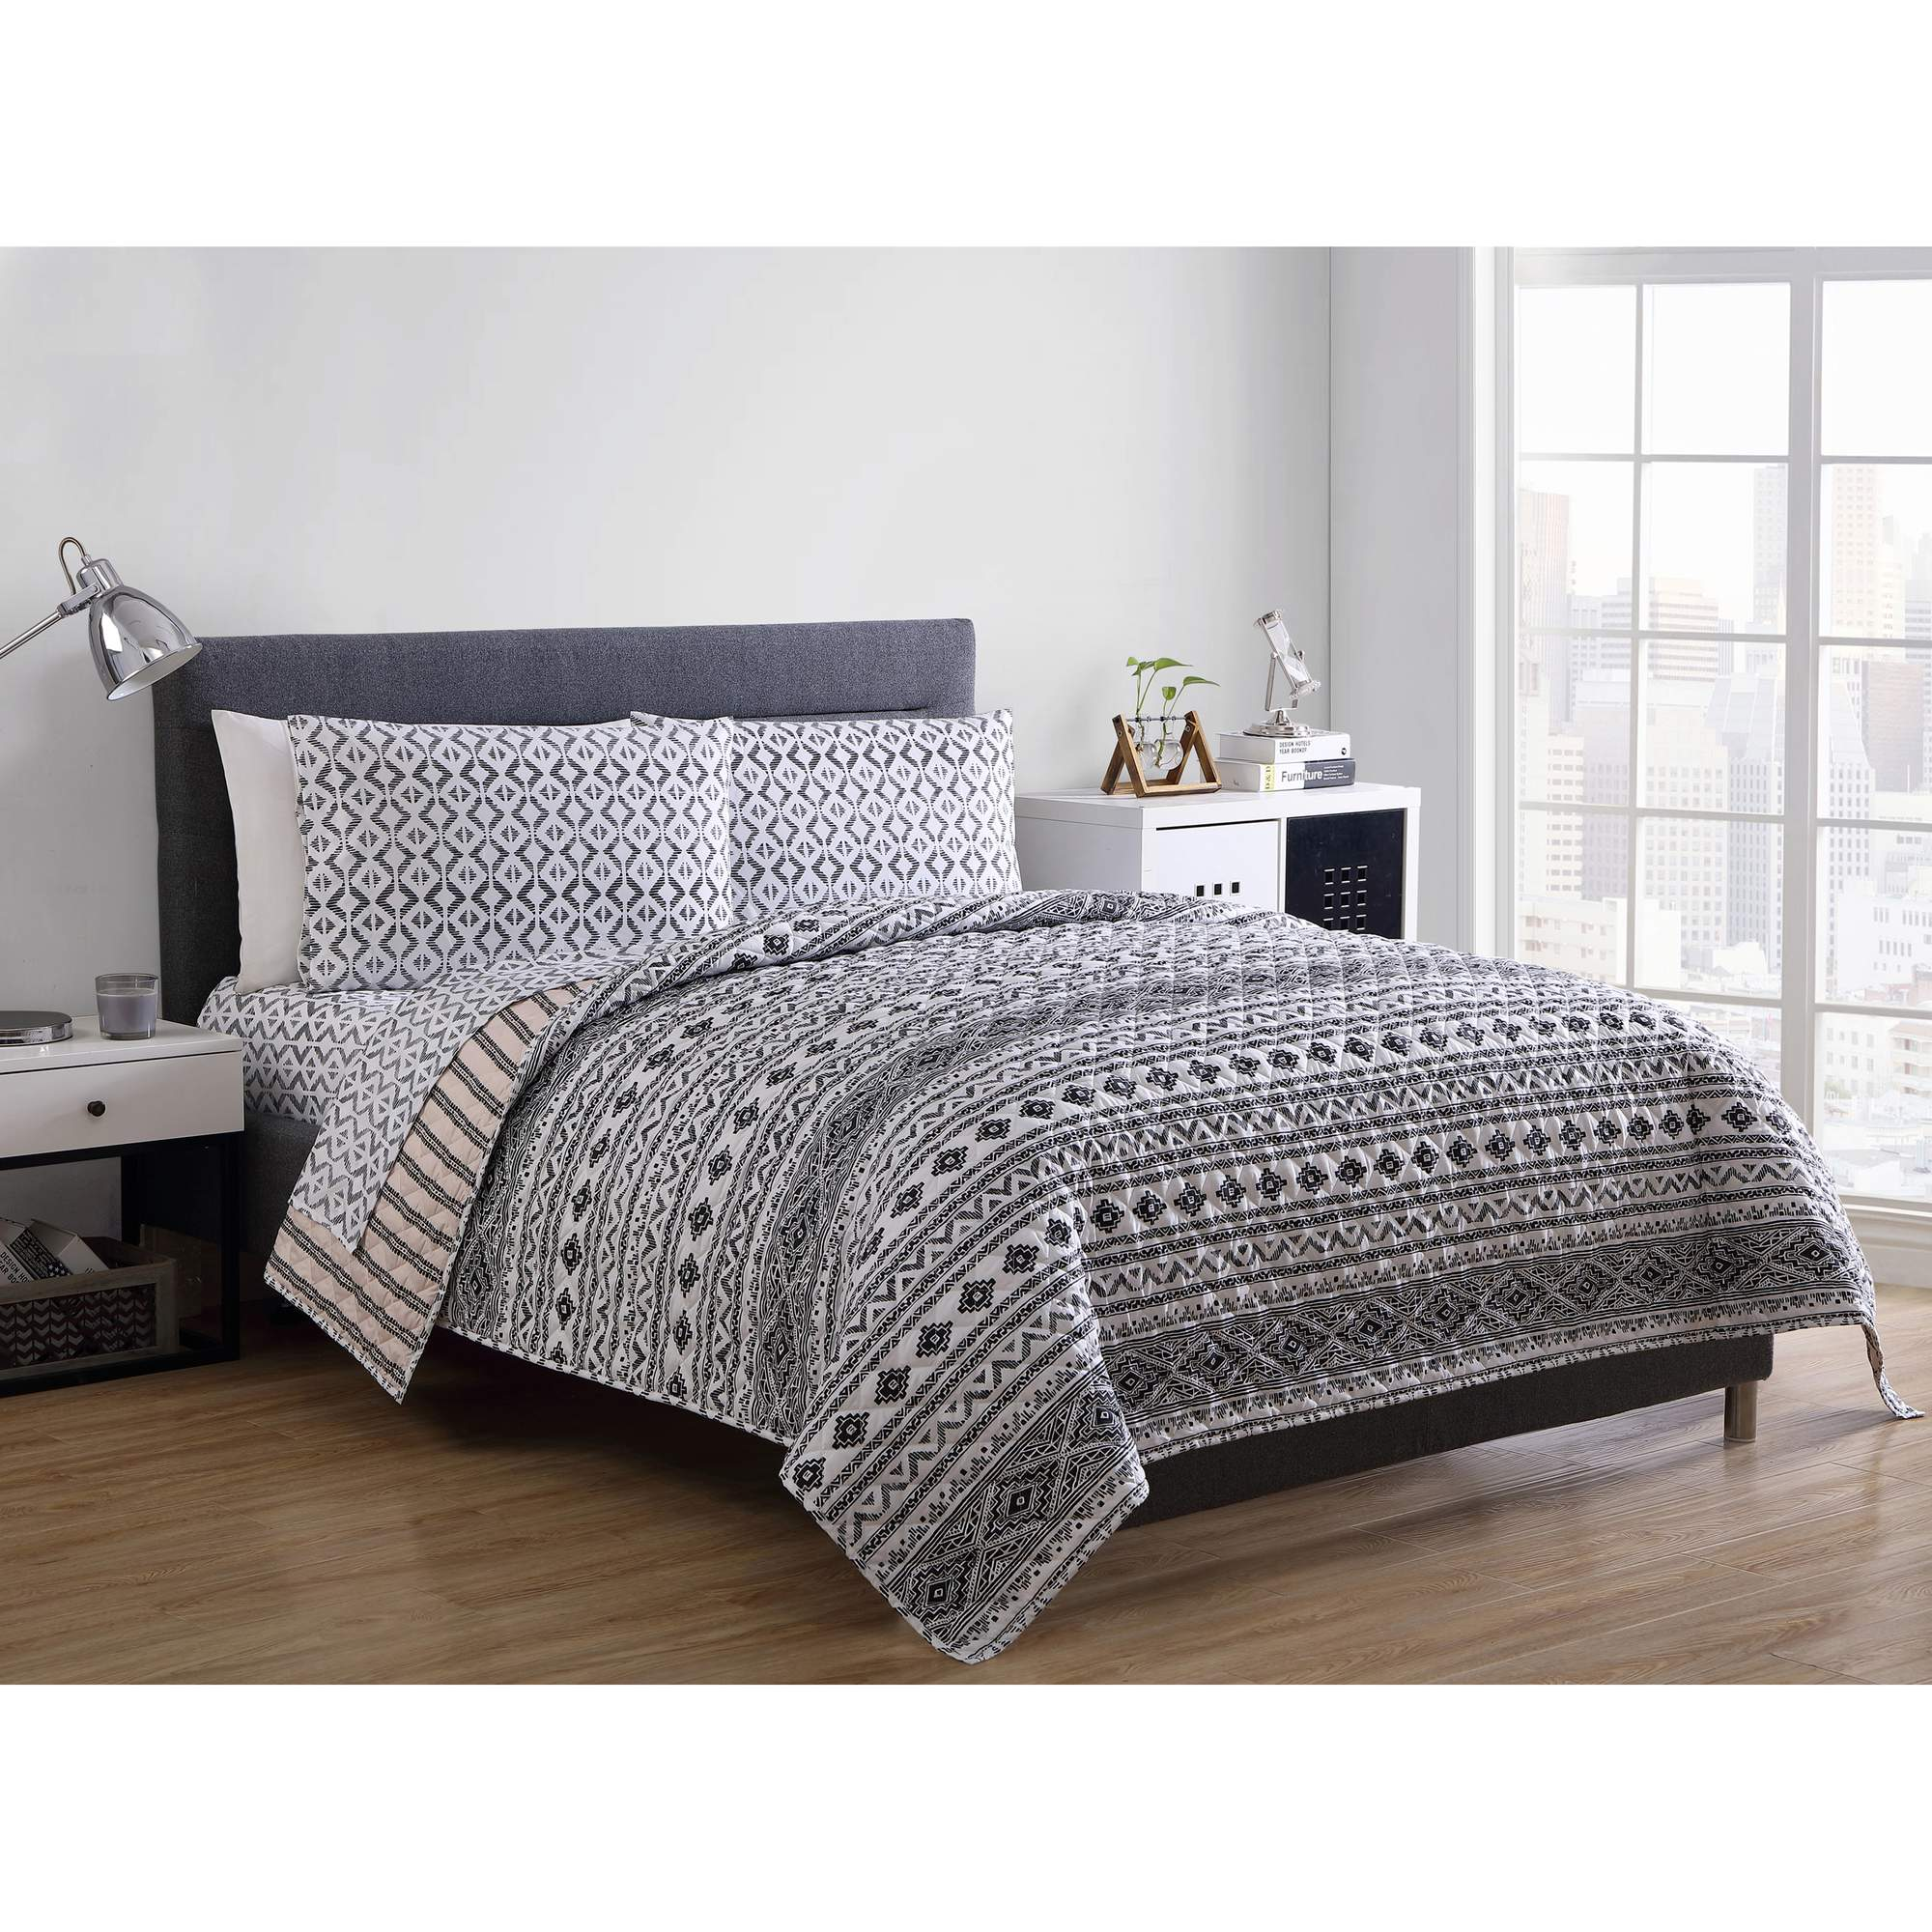 Mainstays Tribeca Geometric 5-Piece Bedding Quilt Set by VCNY Home